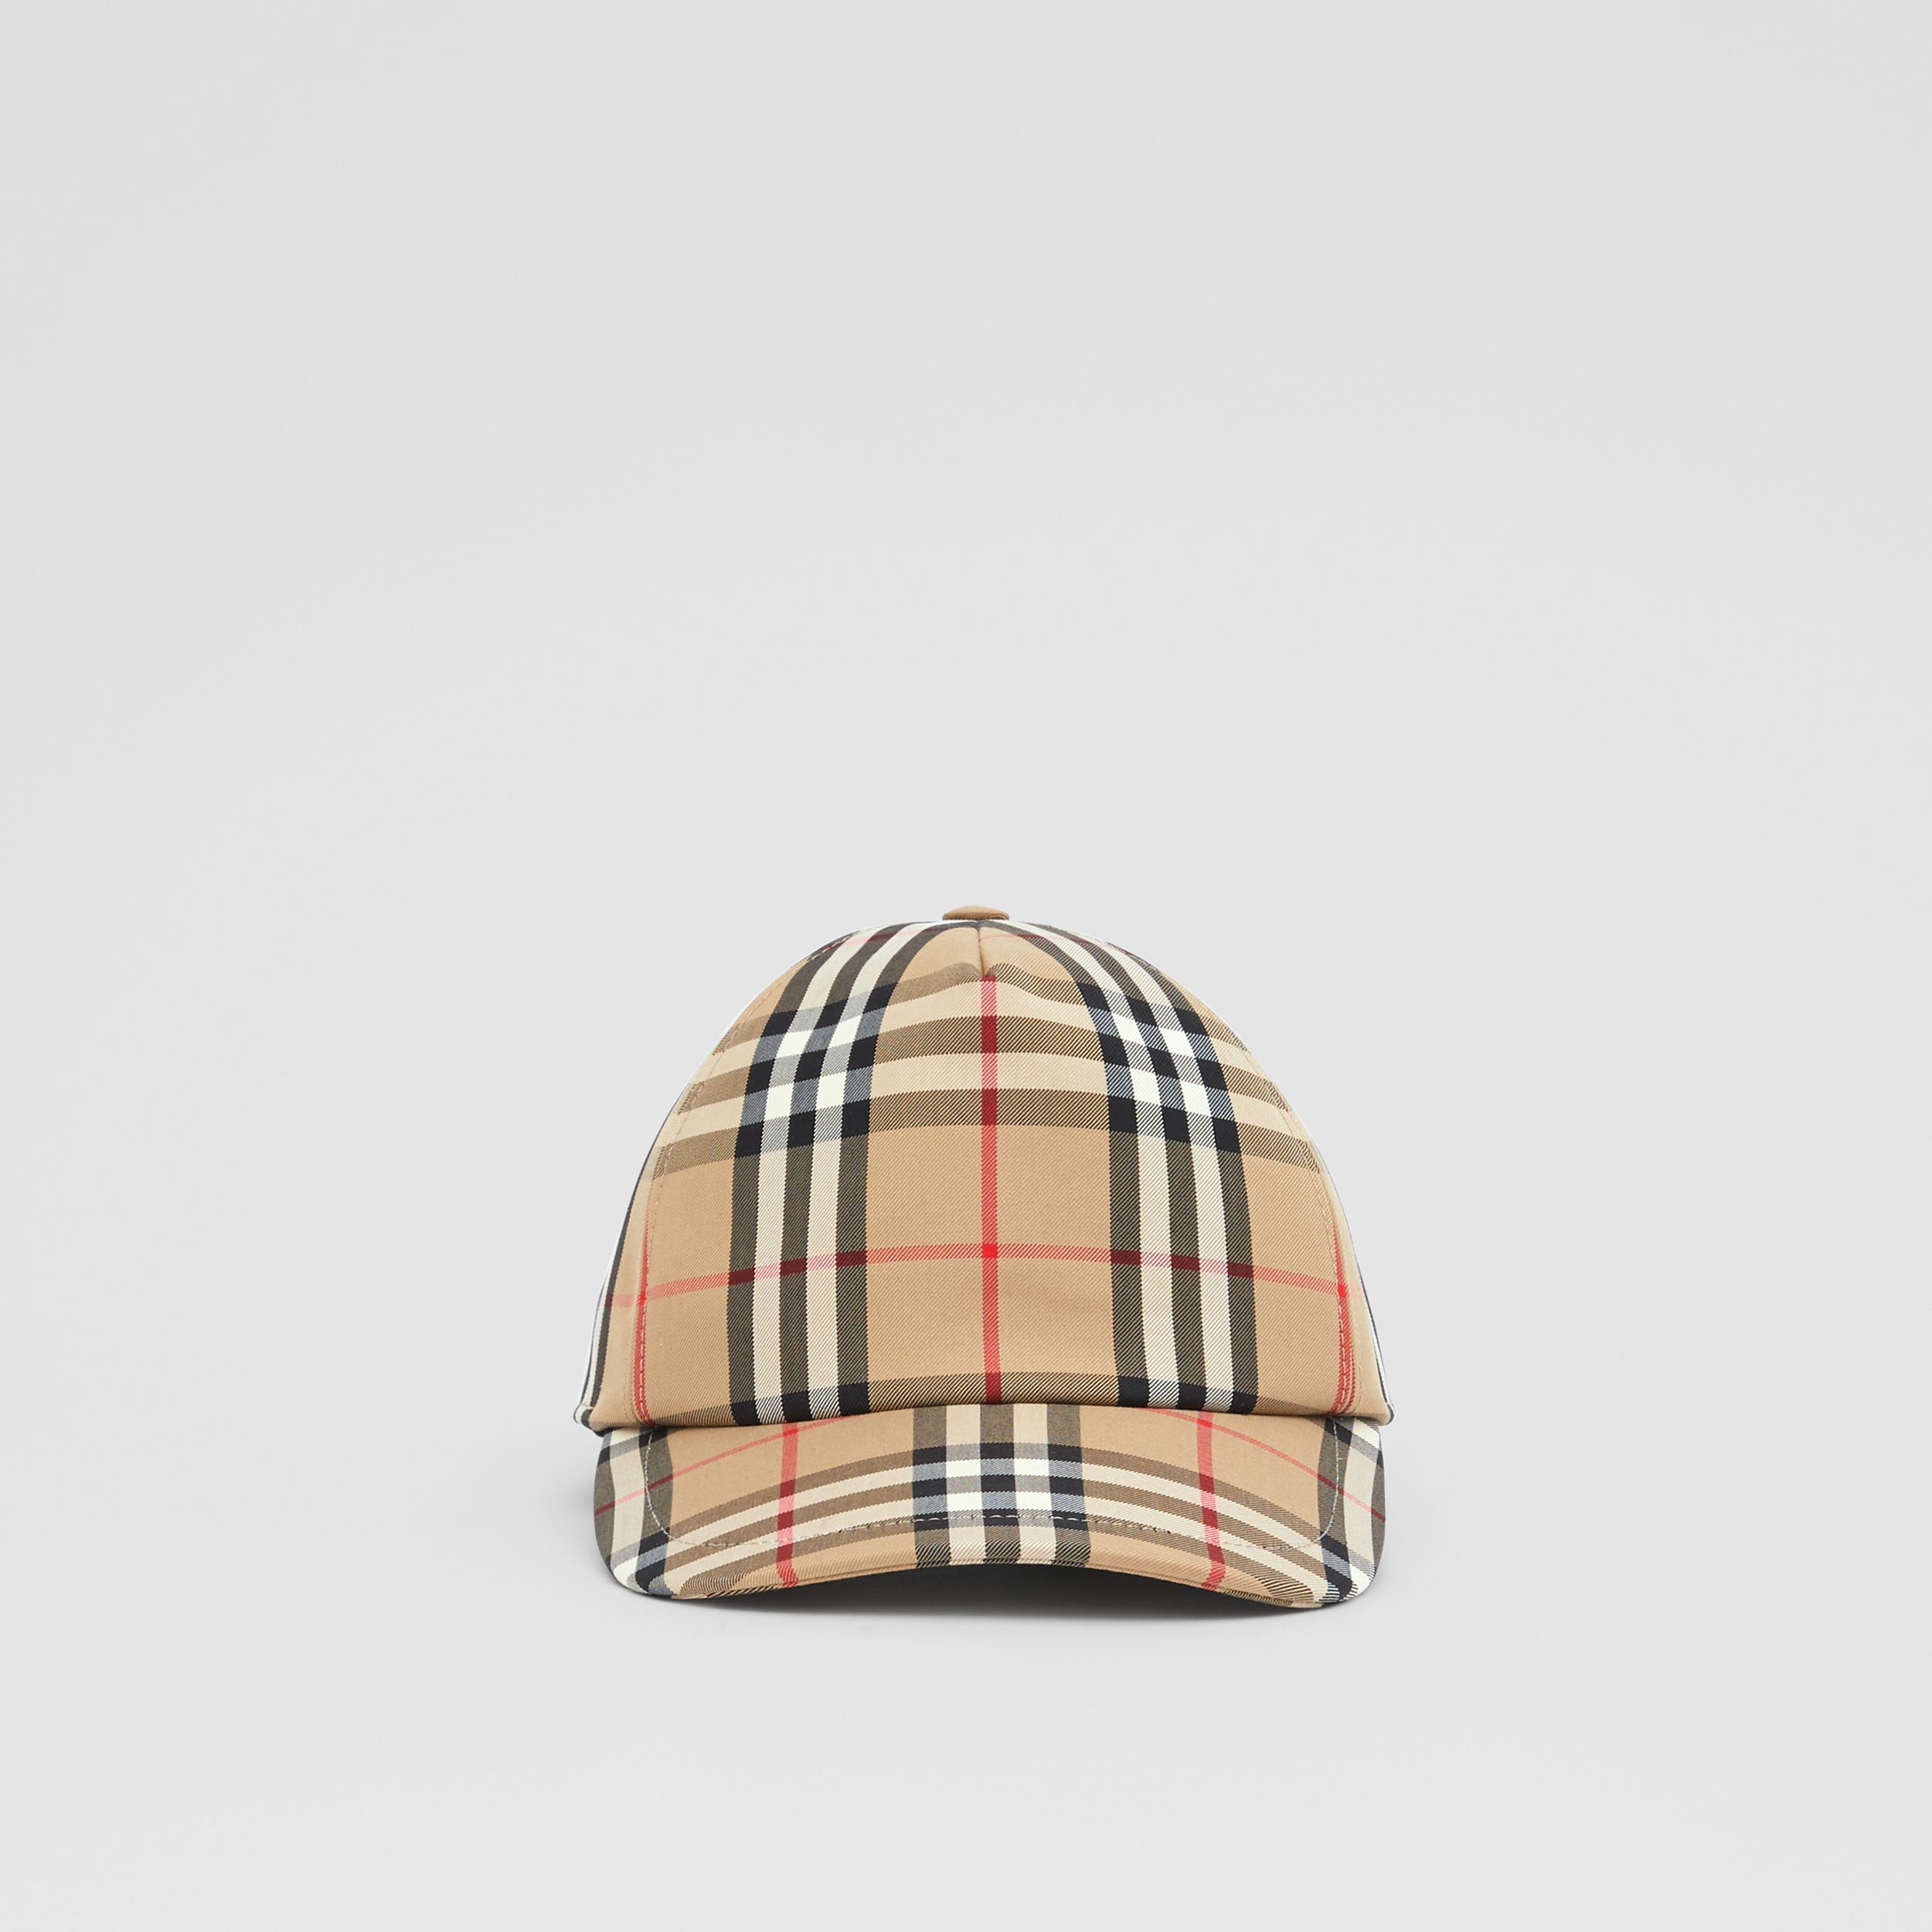 Logo Appliqué Vintage Check Baseball Cap in Archive Beige | Burberry Canada - 1